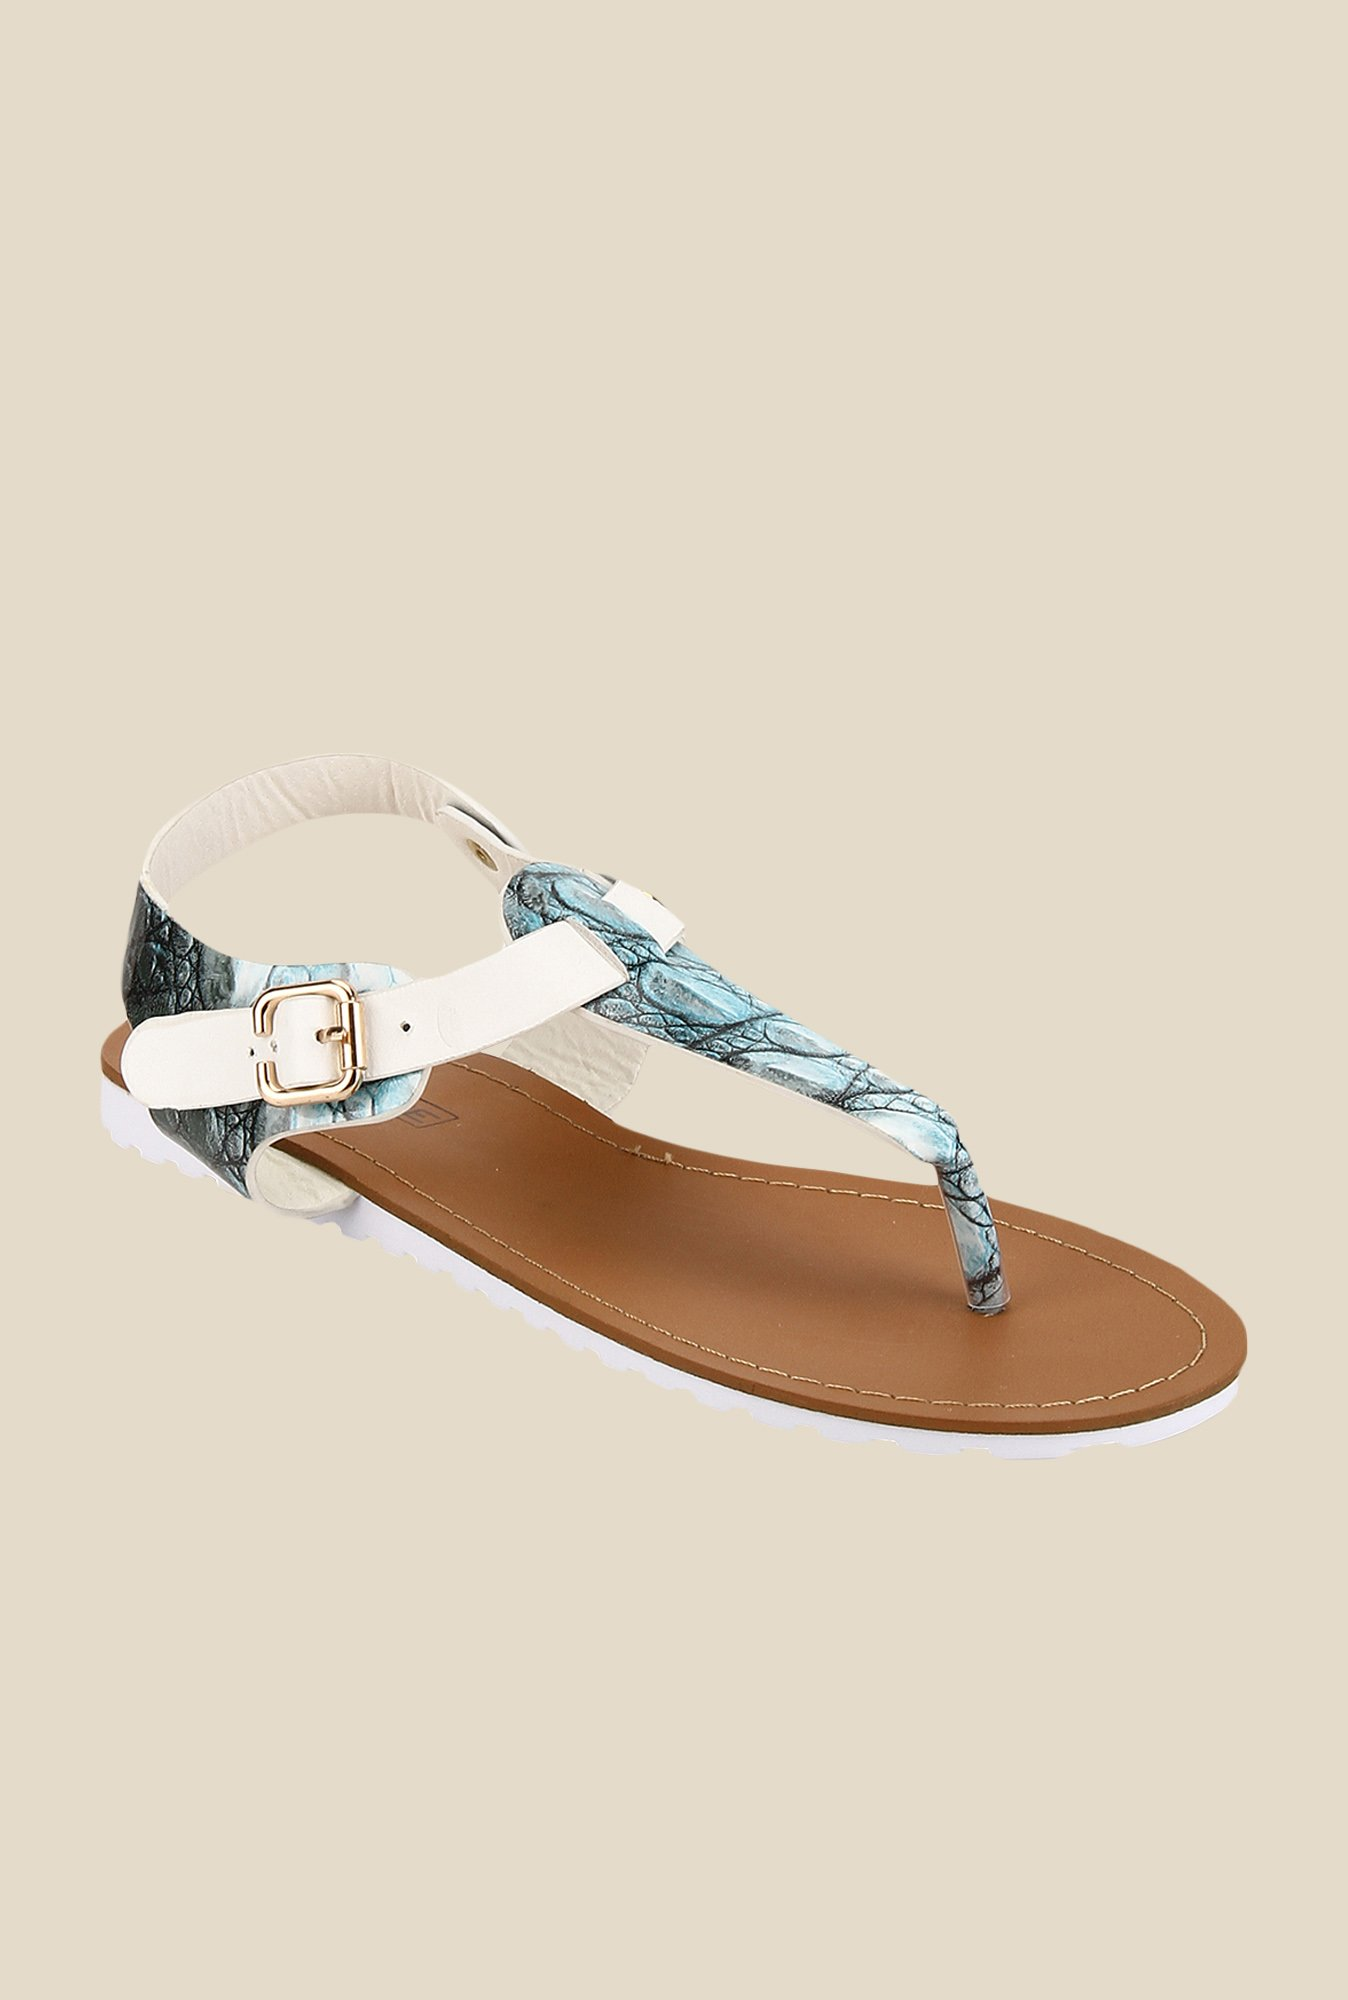 Yepme White & Water Blue T-Strap Sandals